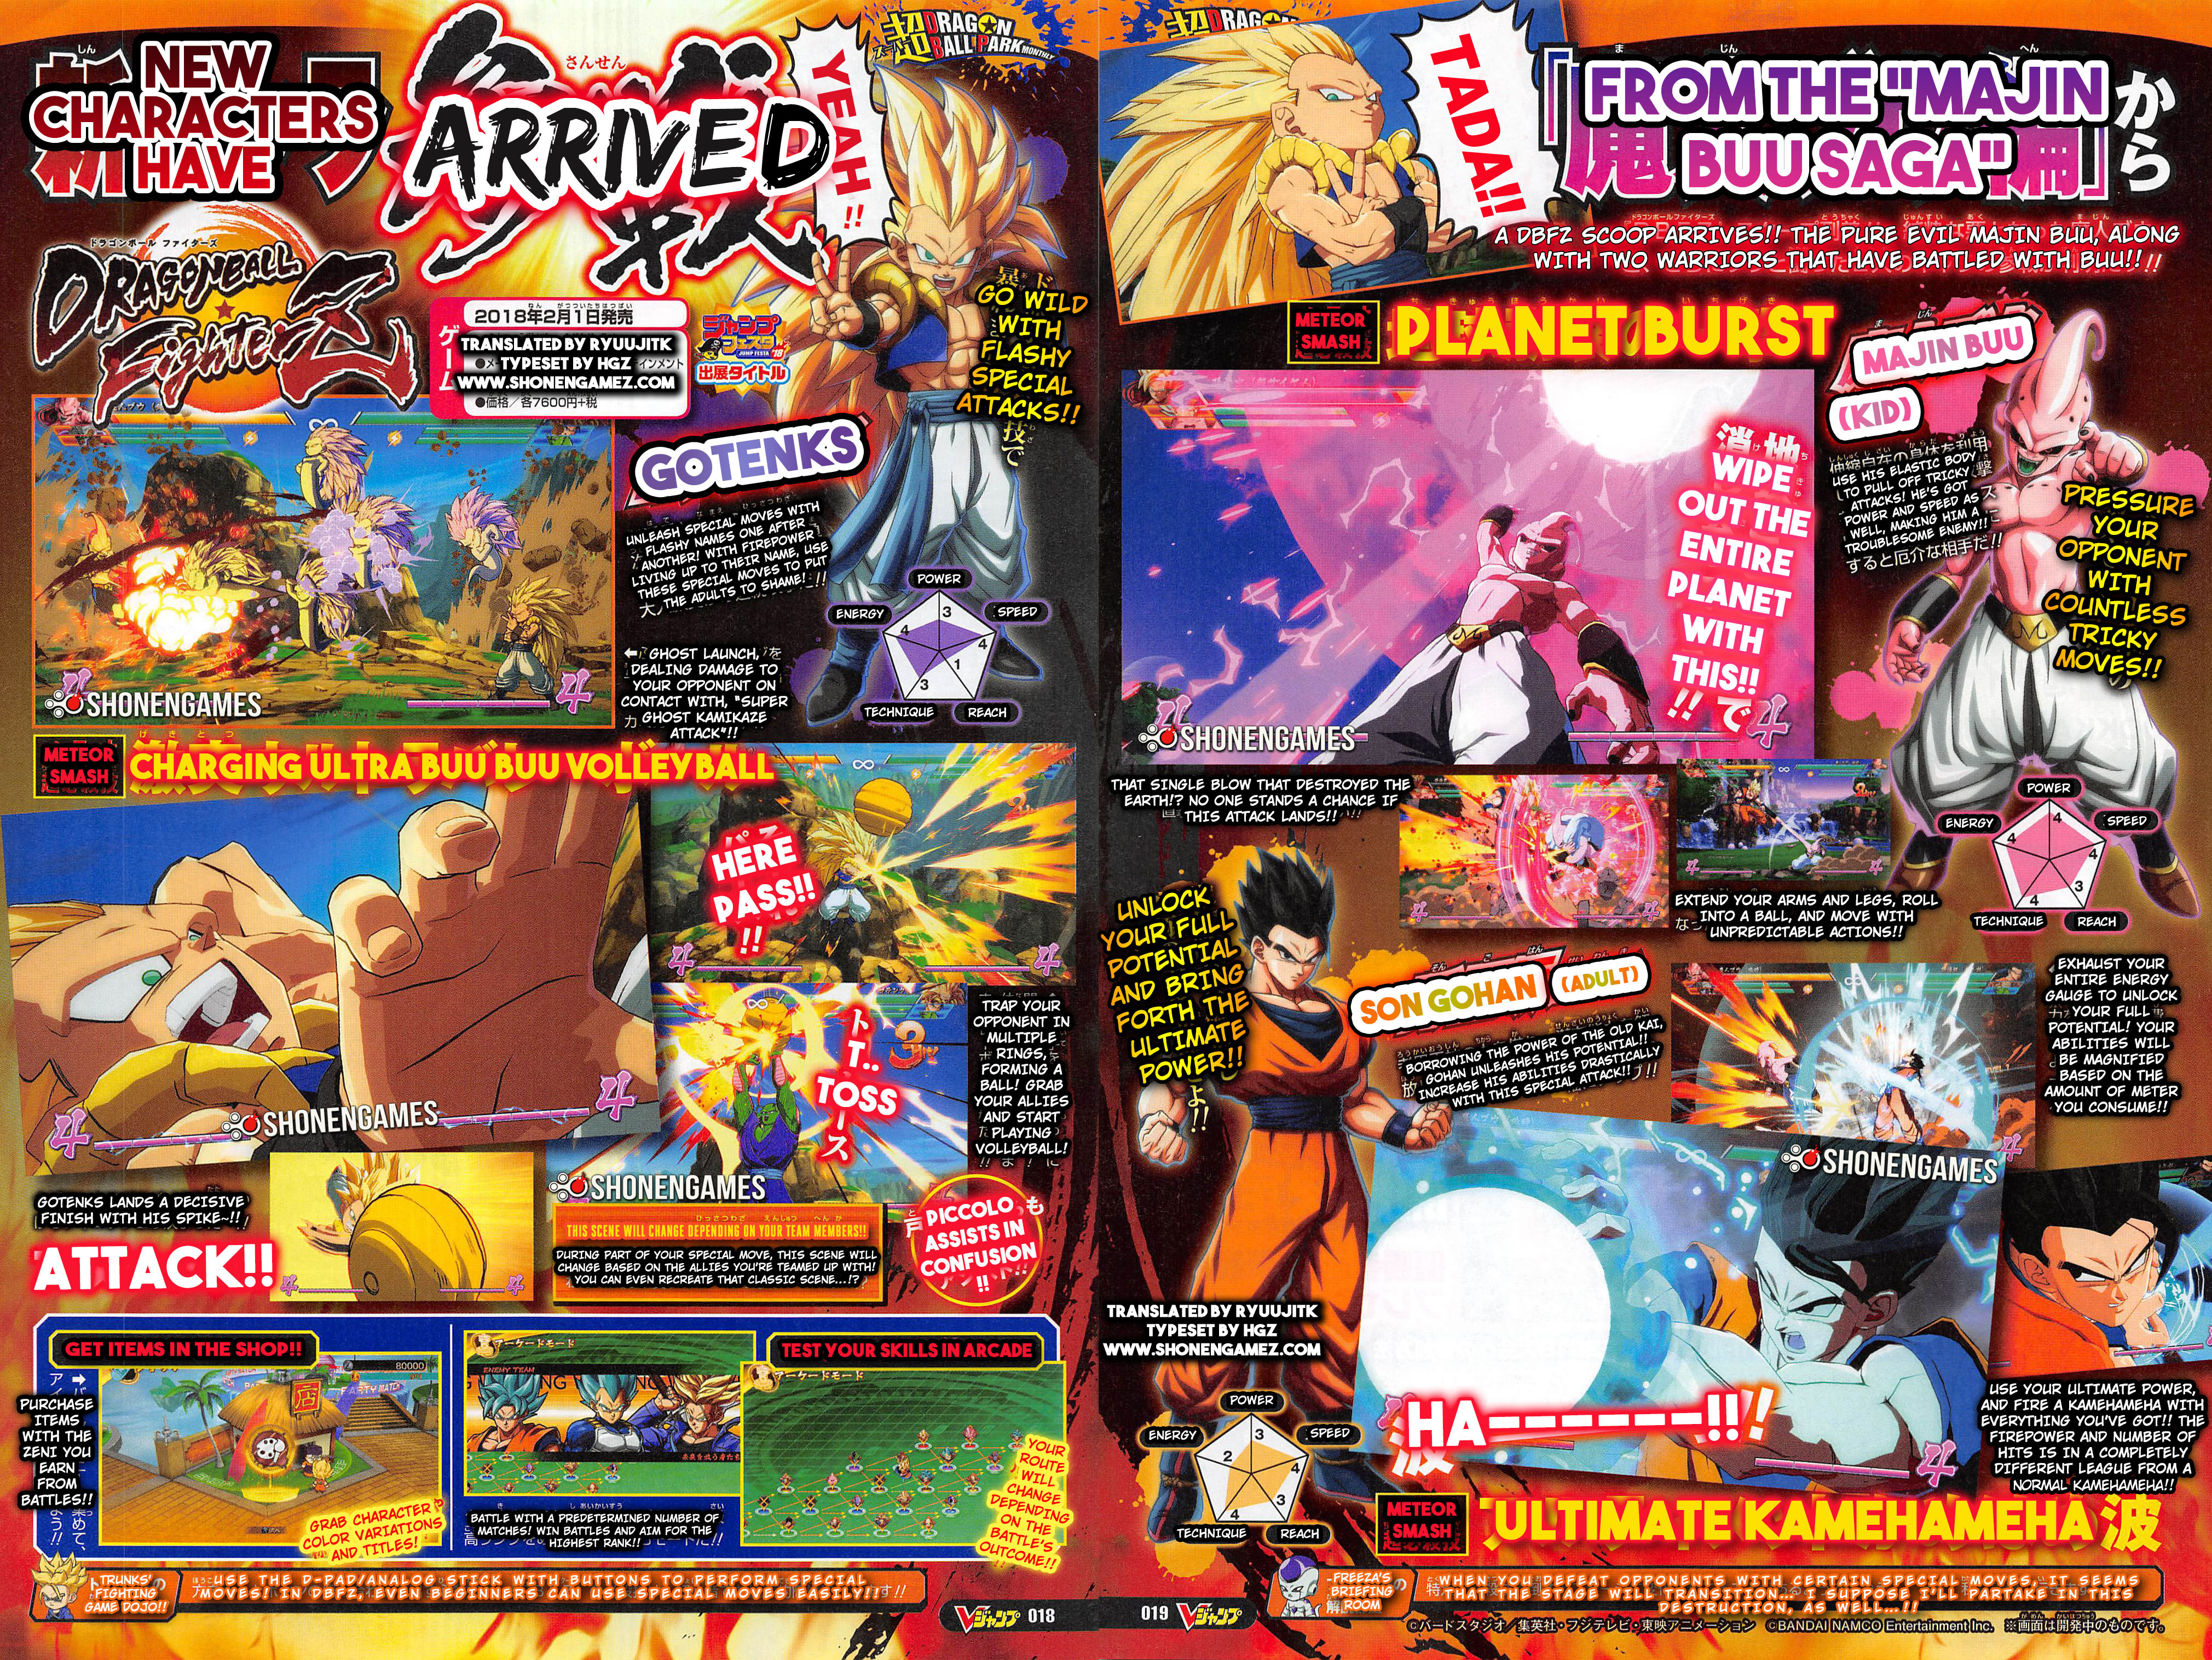 Gotenks ultimate gohan and kid buu translated dragon ball ufromthe4mauin gharaciers arrimed have planetburstmmndud with specta wipe out the ressure gotenks entire altavistaventures Images